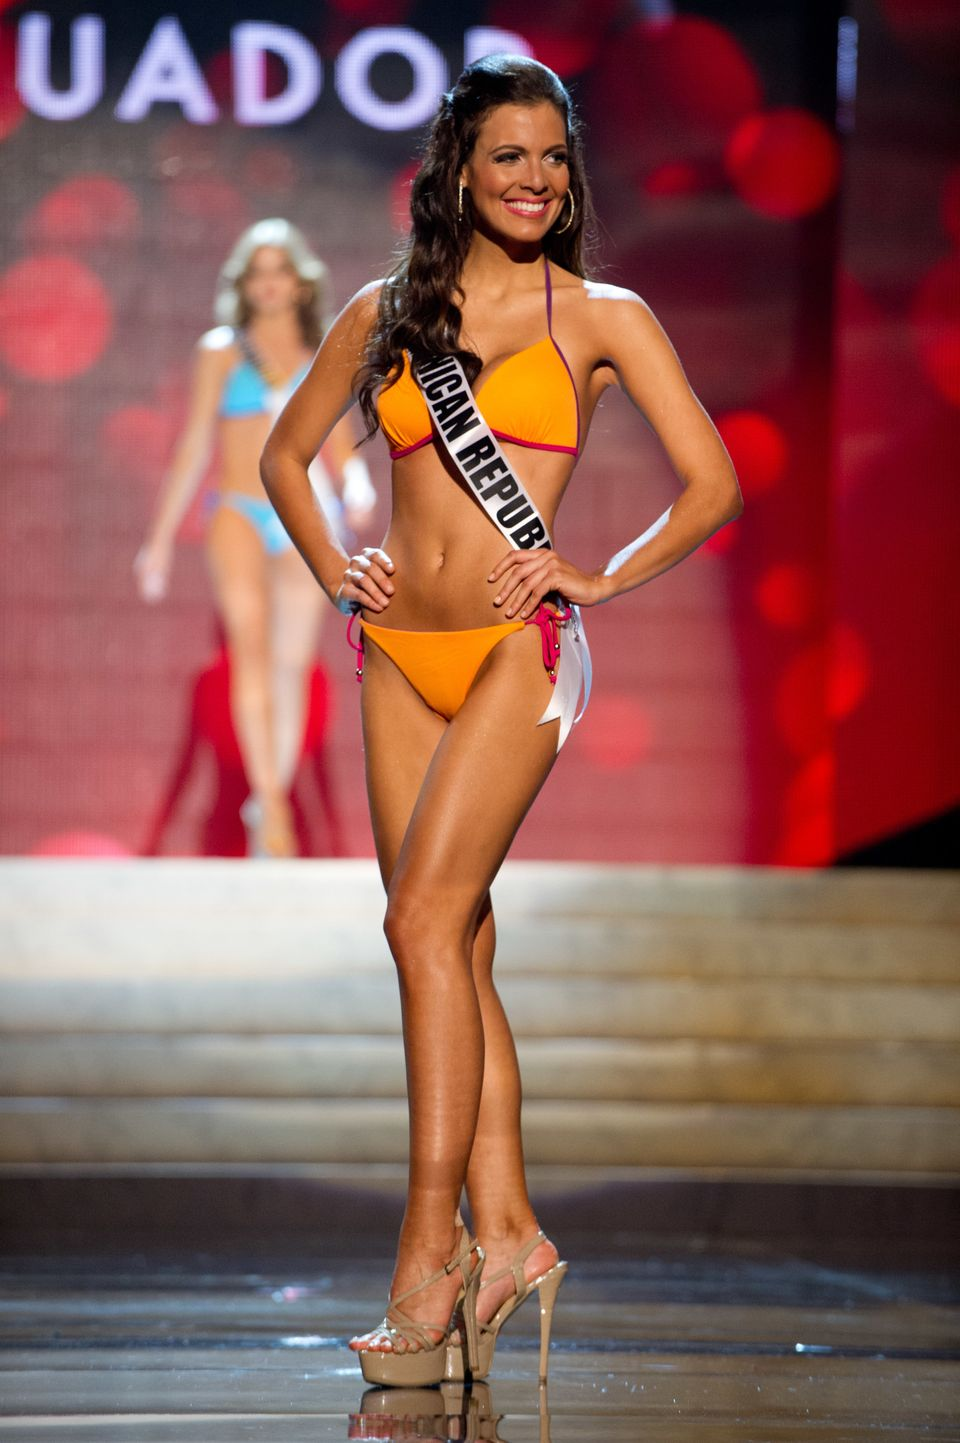 Miss Dominican Republic 2012, Dulcita Lieggi competes during the Swimsuit Competition of the 2012 Miss Universe Presentation